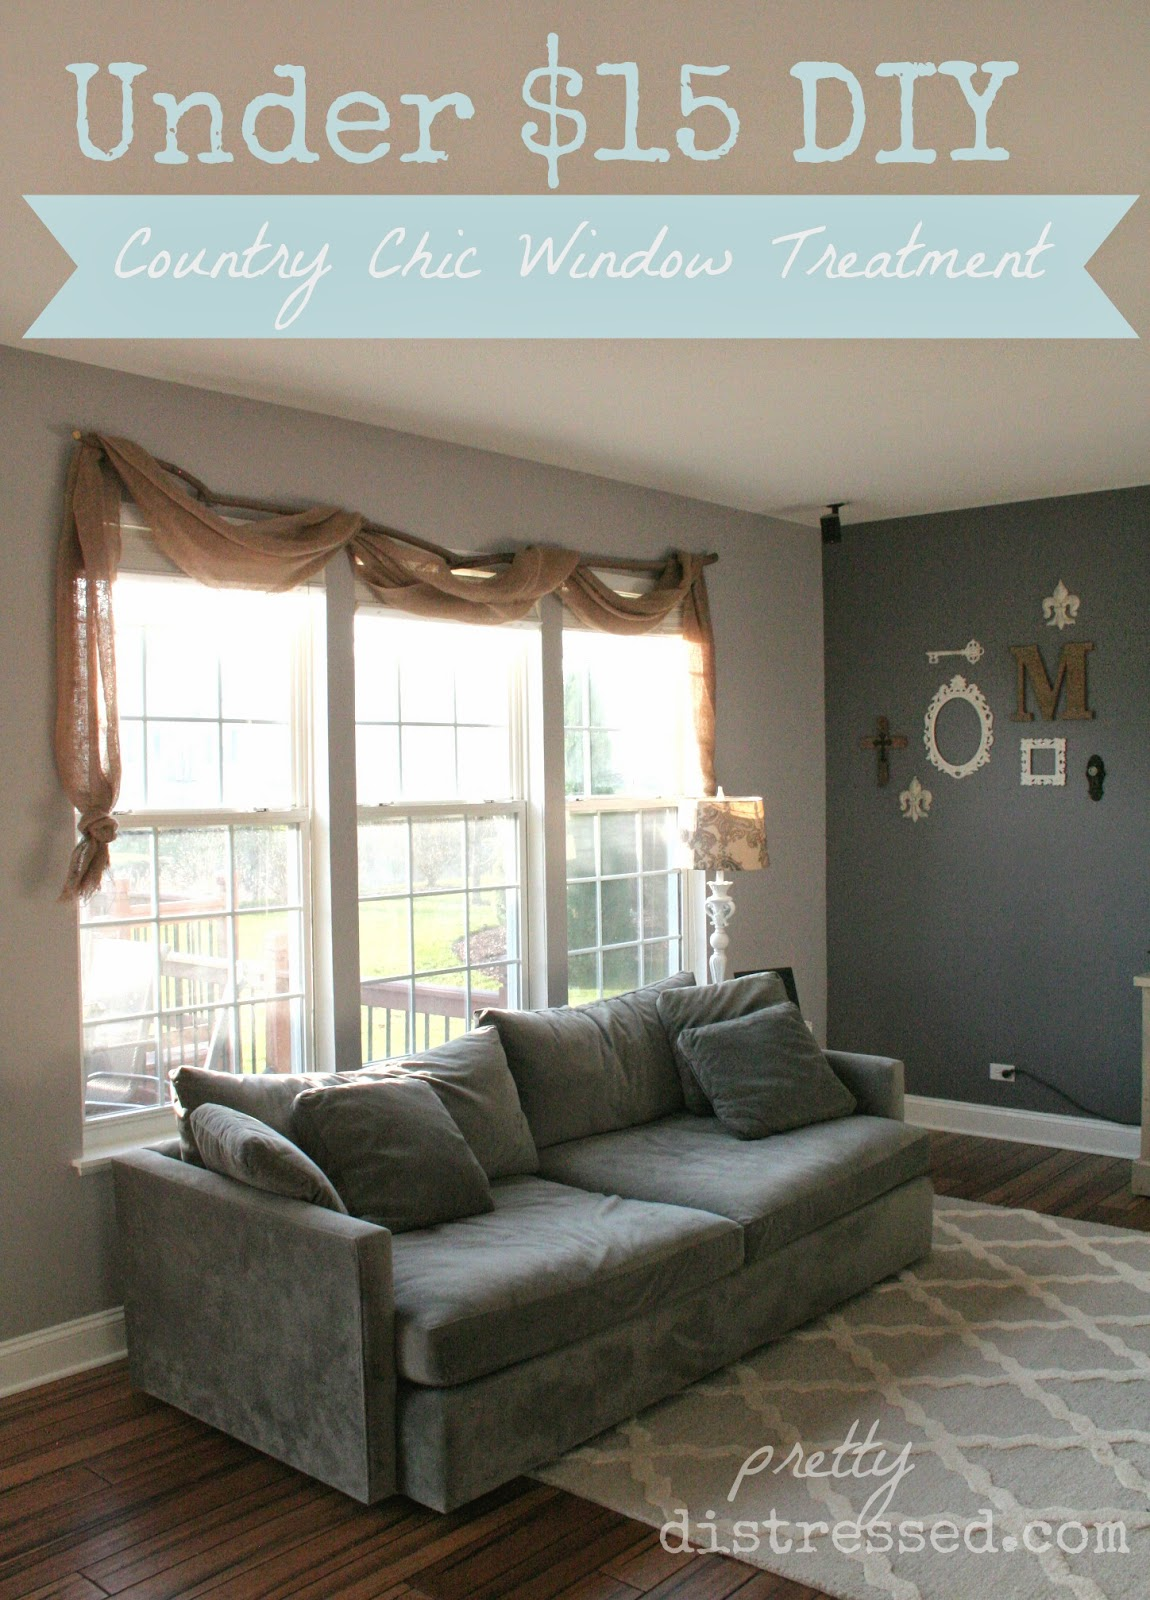 Pin Spired DIY Country Chic Window Treatments